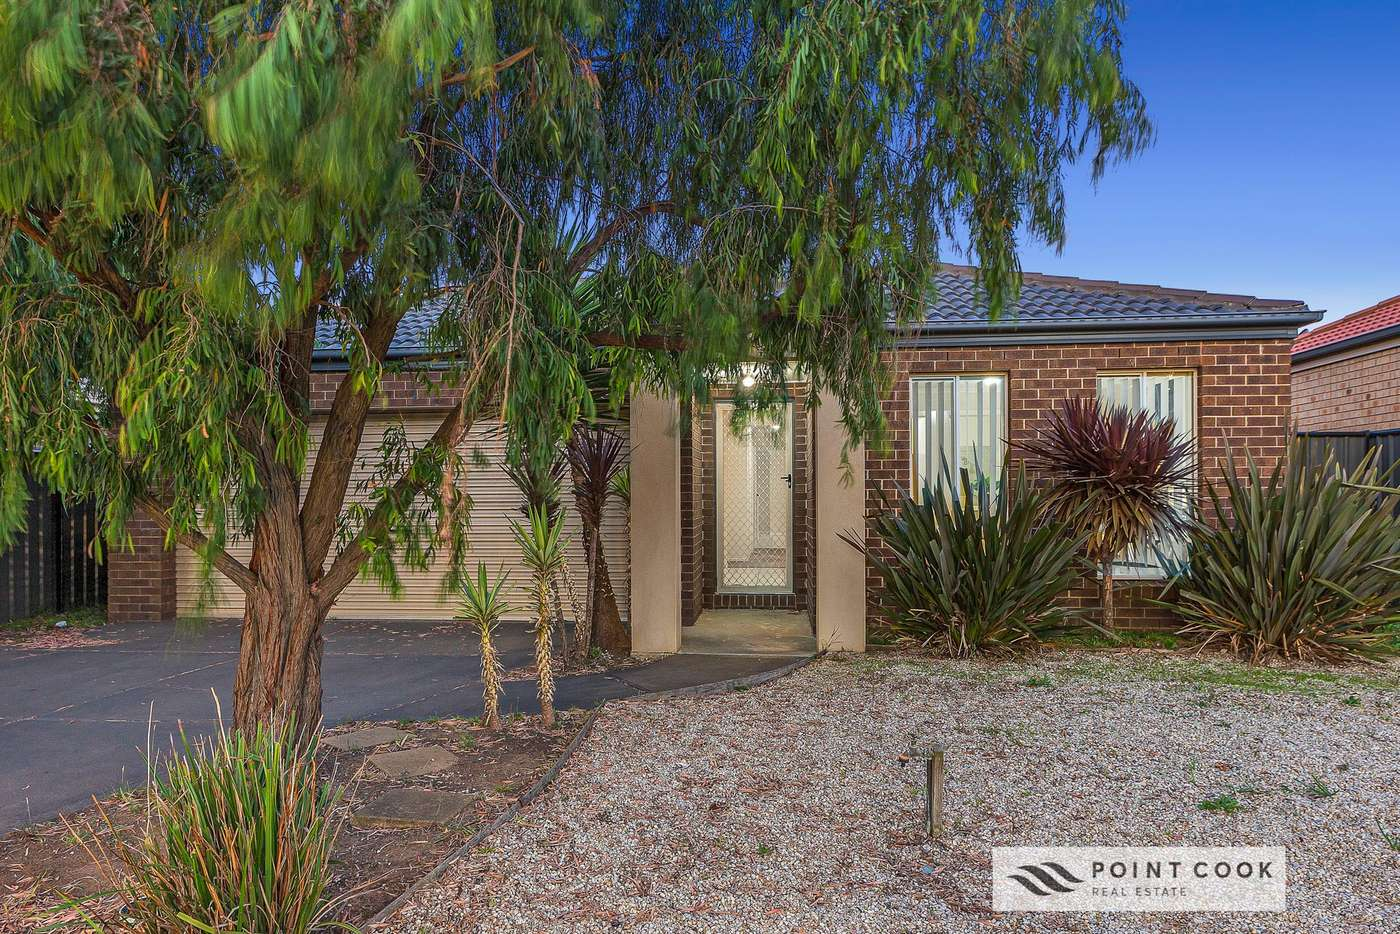 Main view of Homely house listing, 11 Goldstein Vista, Point Cook VIC 3030